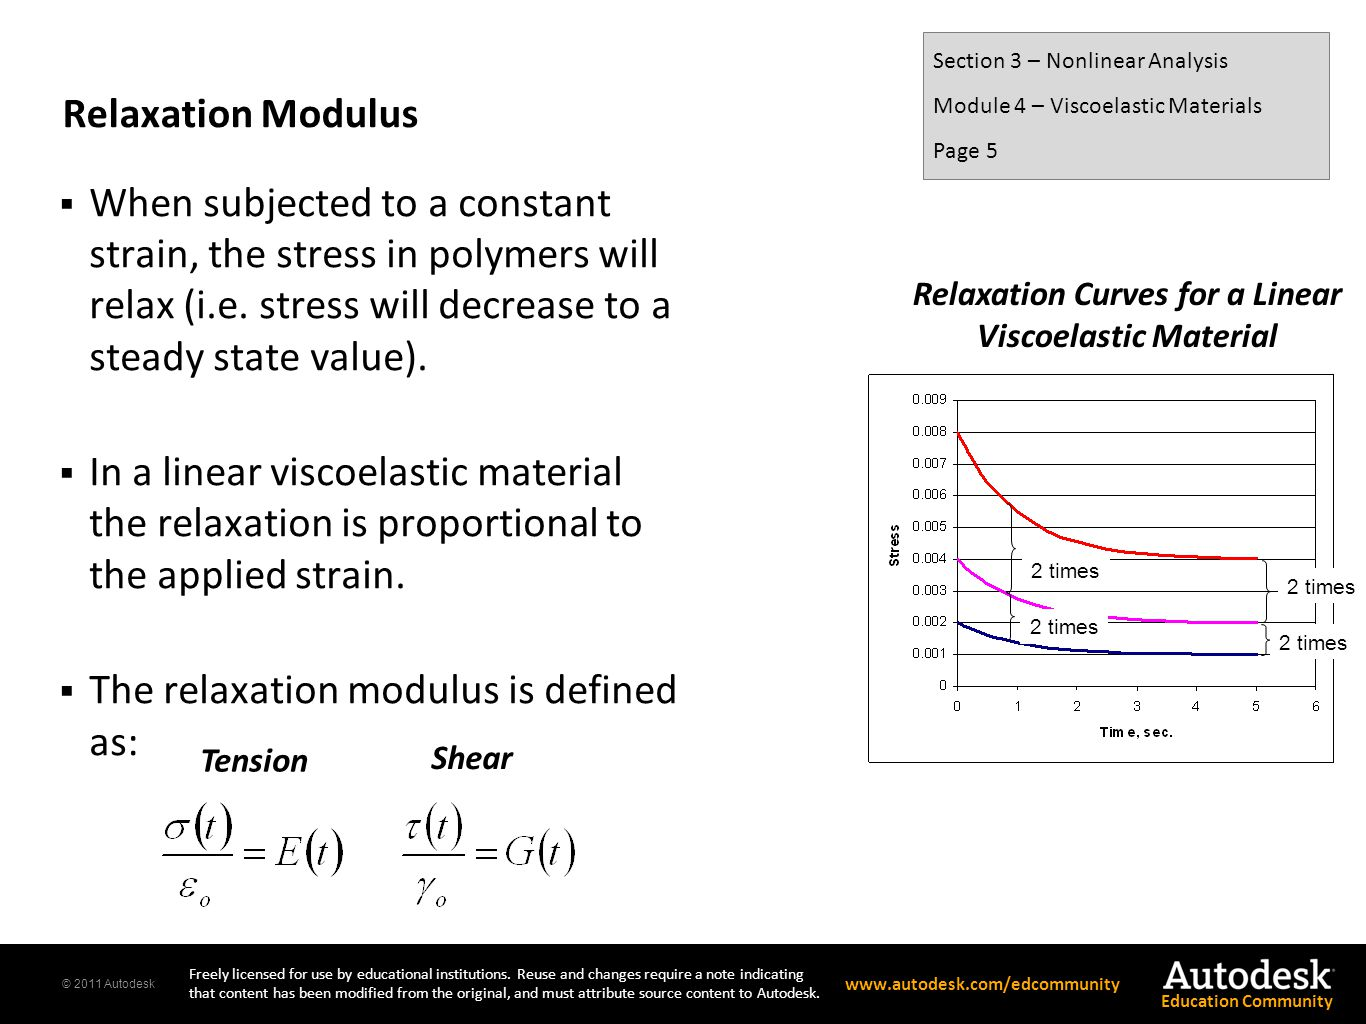 Relaxation Curves for a Linear Viscoelastic Material